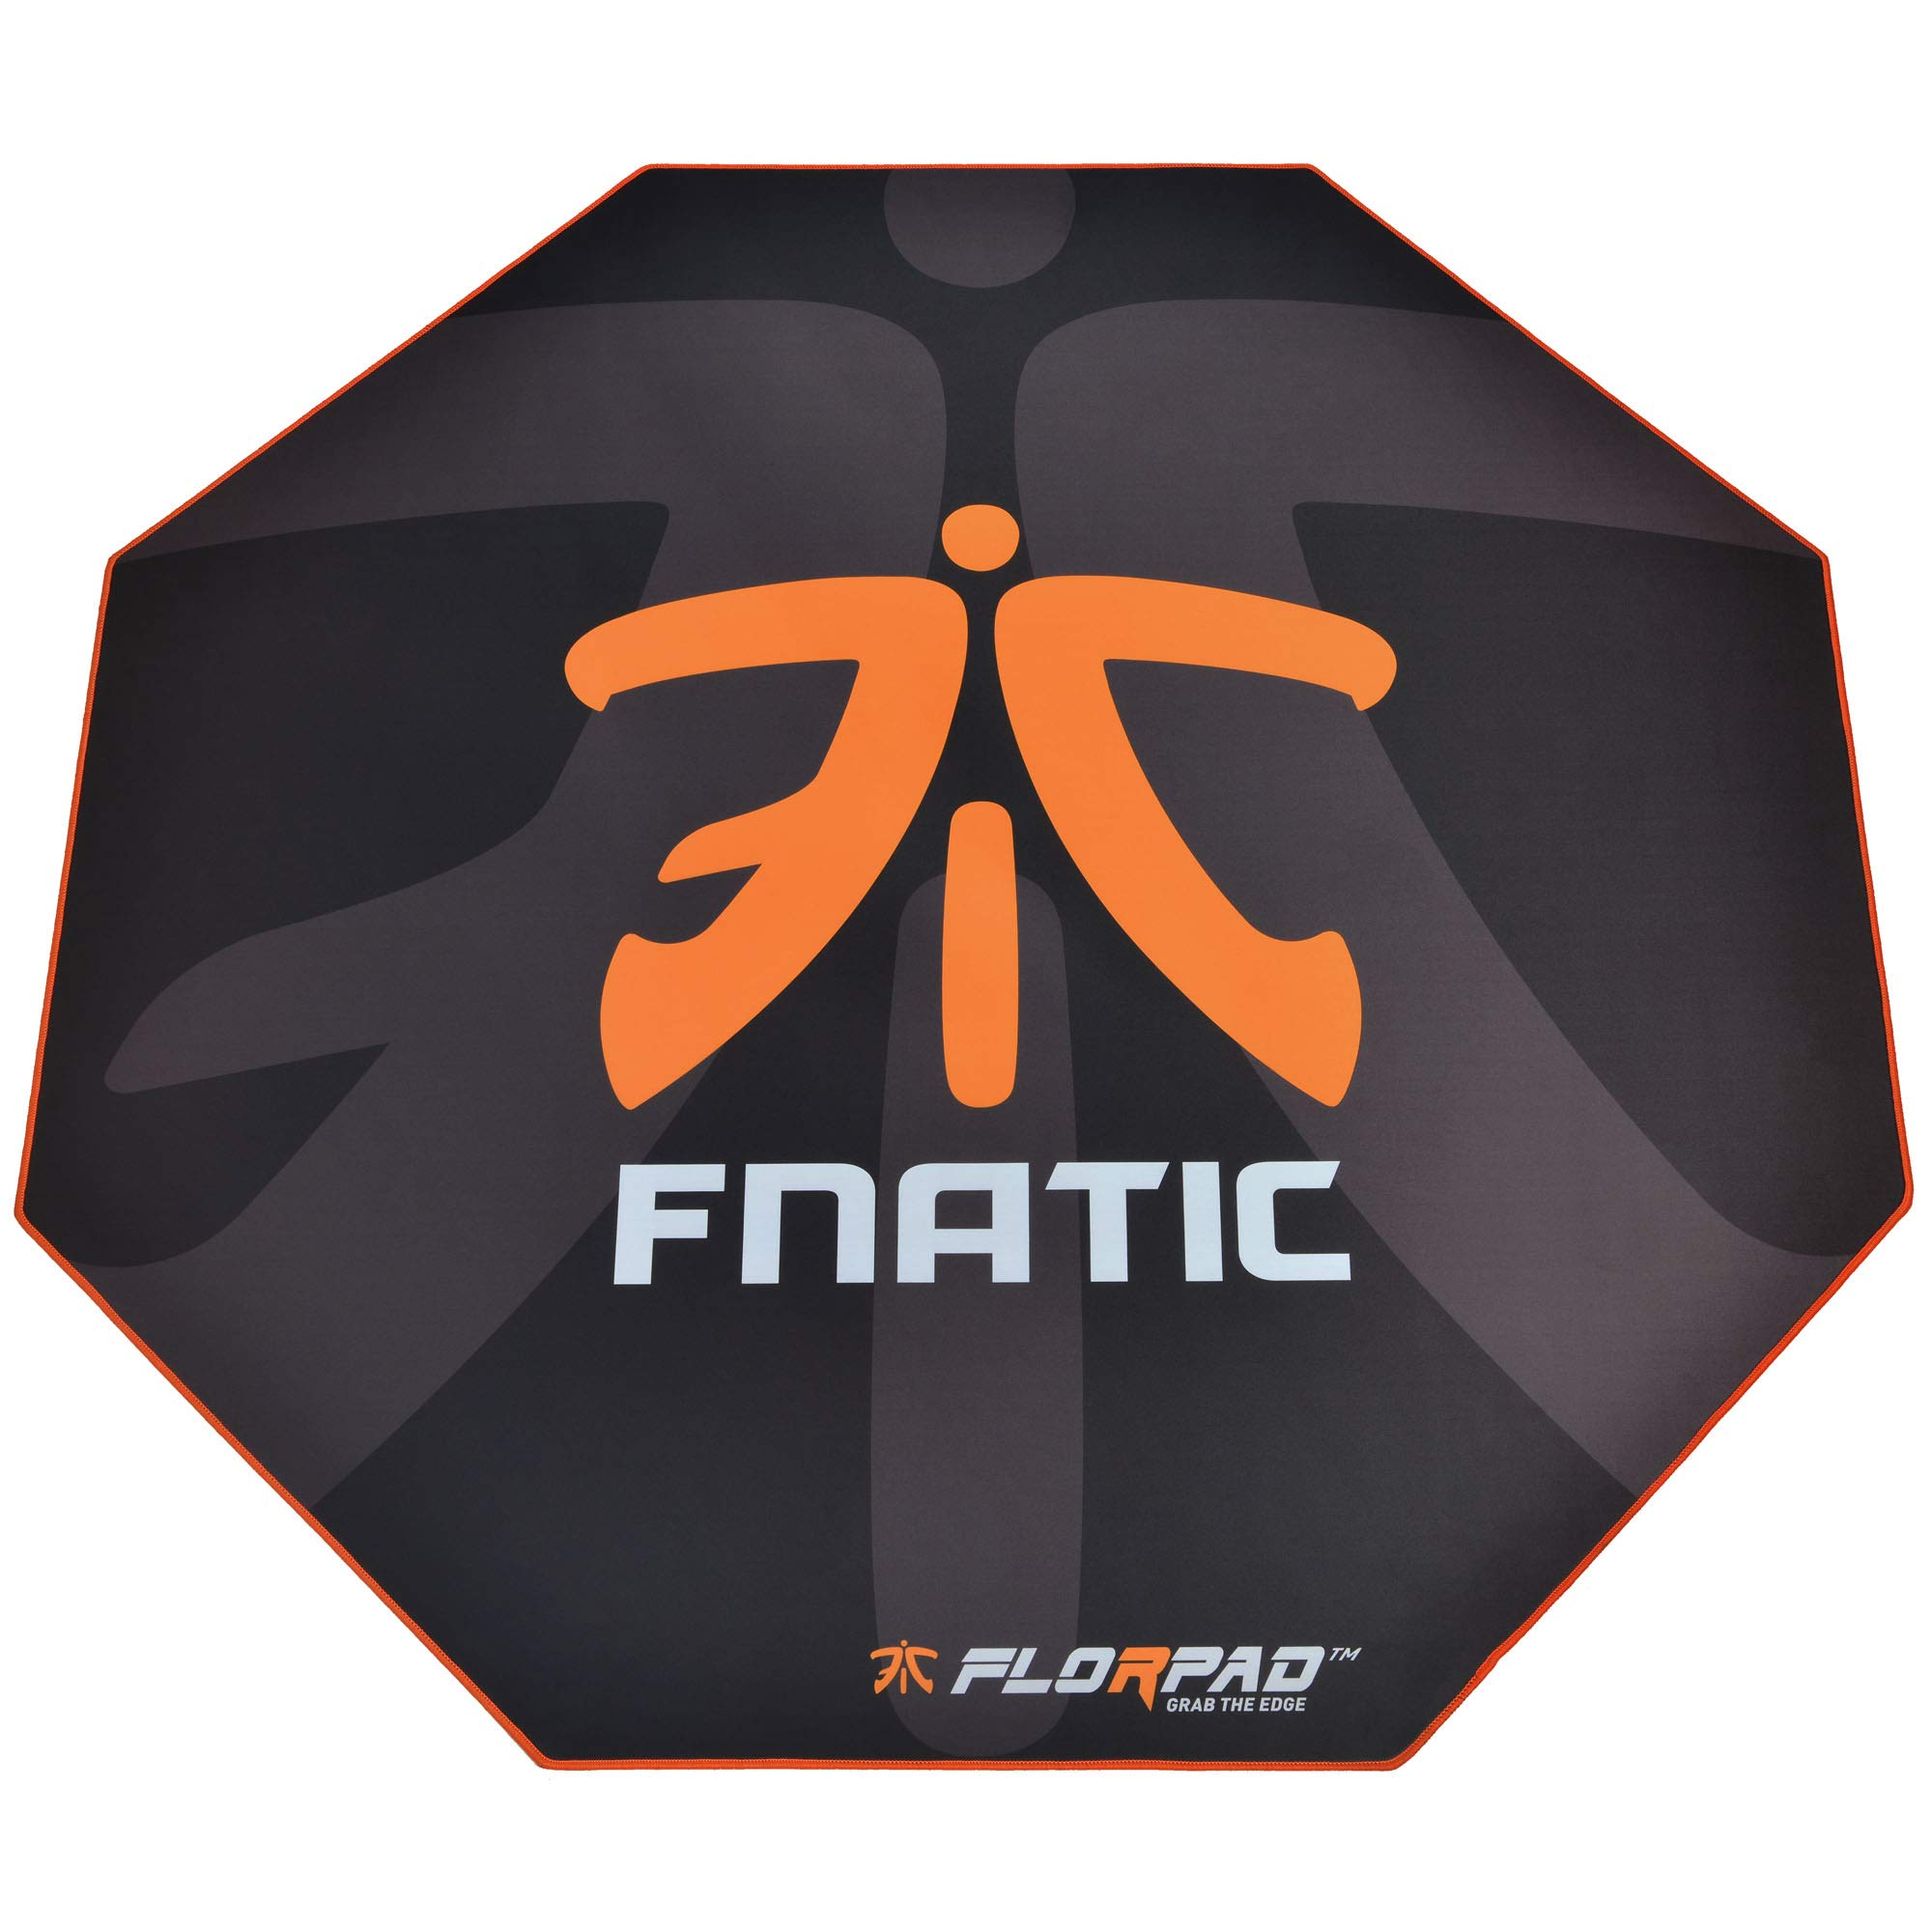 Florpad Fnatic Gaming Office Chair Mat   Protects All Floors   Liquid Resistant   Noise Cancelling   Smooth Surface 45'' x 45''